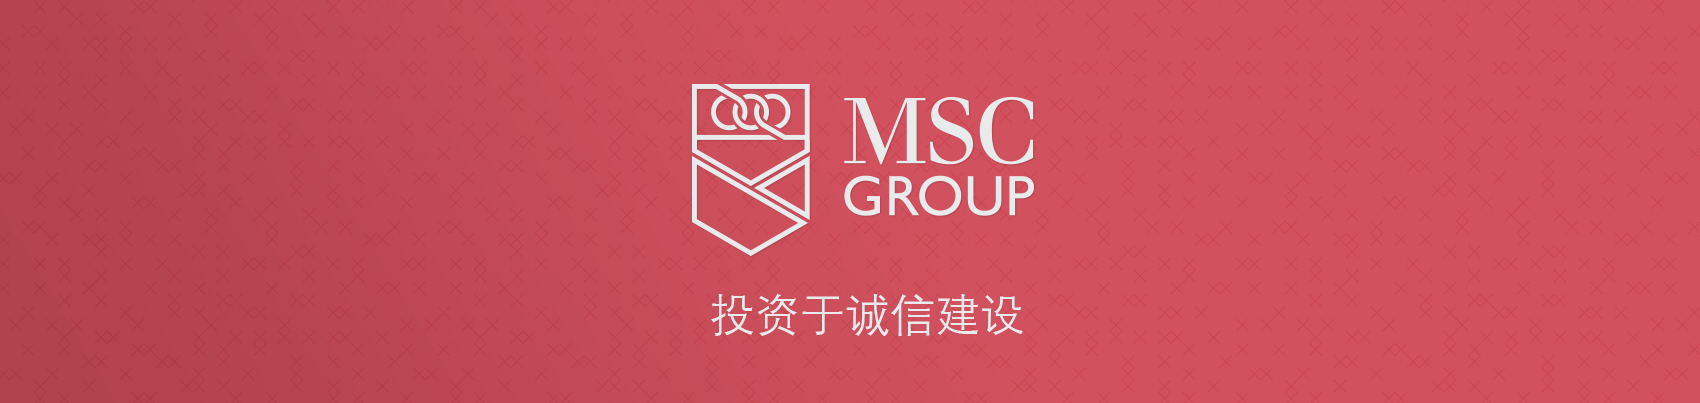 MSCGroup-mid-banner-zh